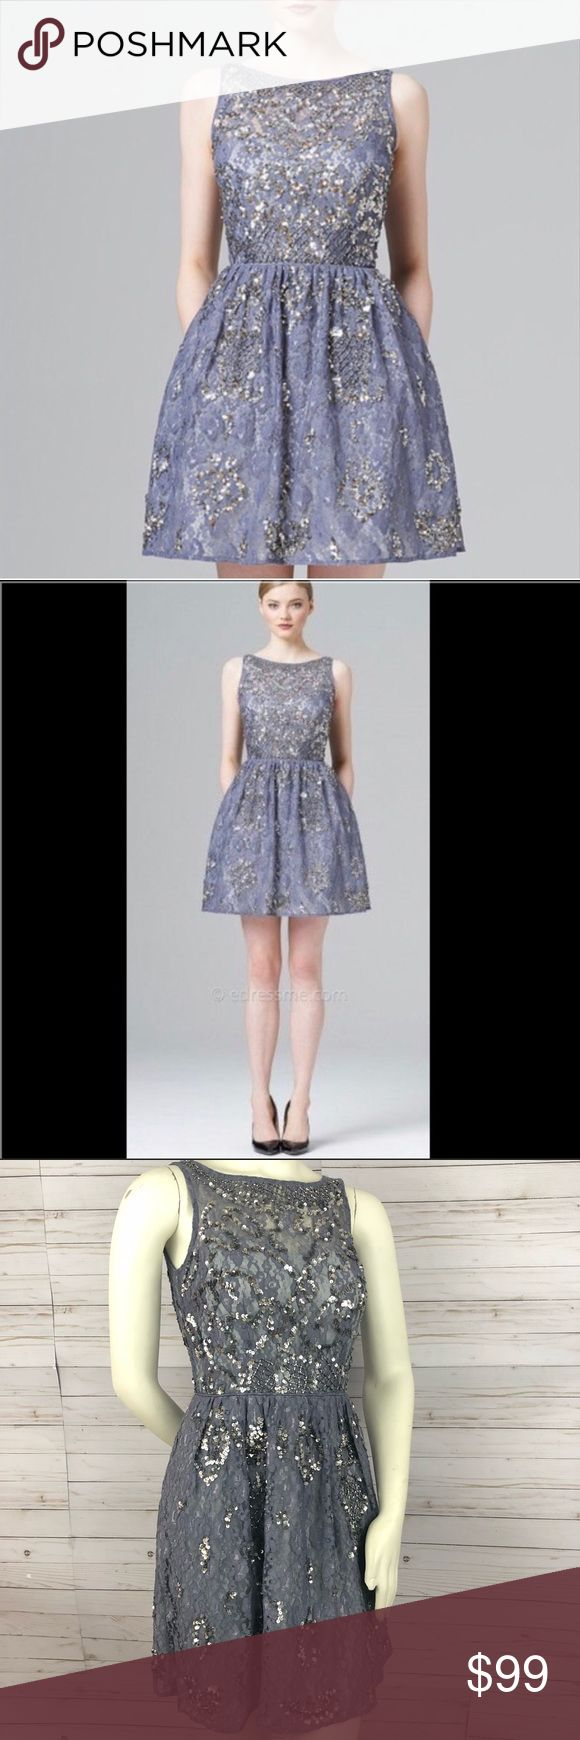 Aidan Mattox sequin formal party dress Aidan Mattox a-line sequin formal party dress.  Lavender/purple/silver Lace overlay with intricate sequin design  Sleeveless High neck Hidden back zipper Bust semi-padded with thin cups  Great for prom or any formal/fancy event Aidan Mattox Dresses